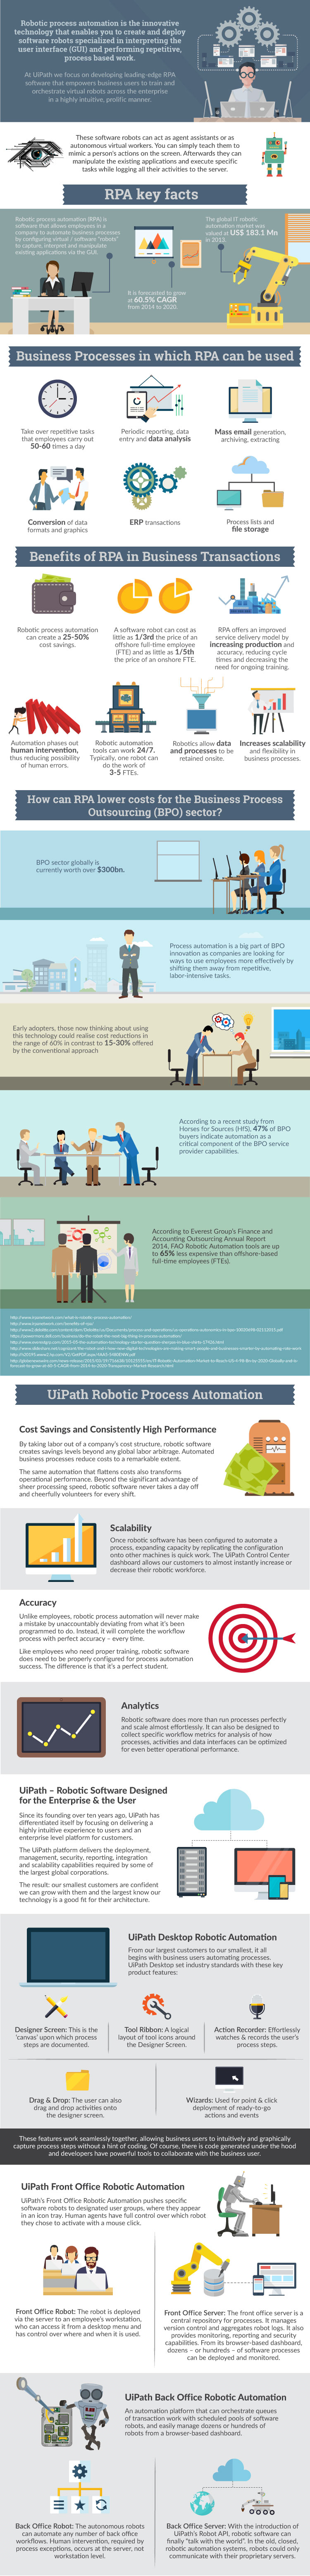 The_Robotic_Process_Automation_Infographic.jpg